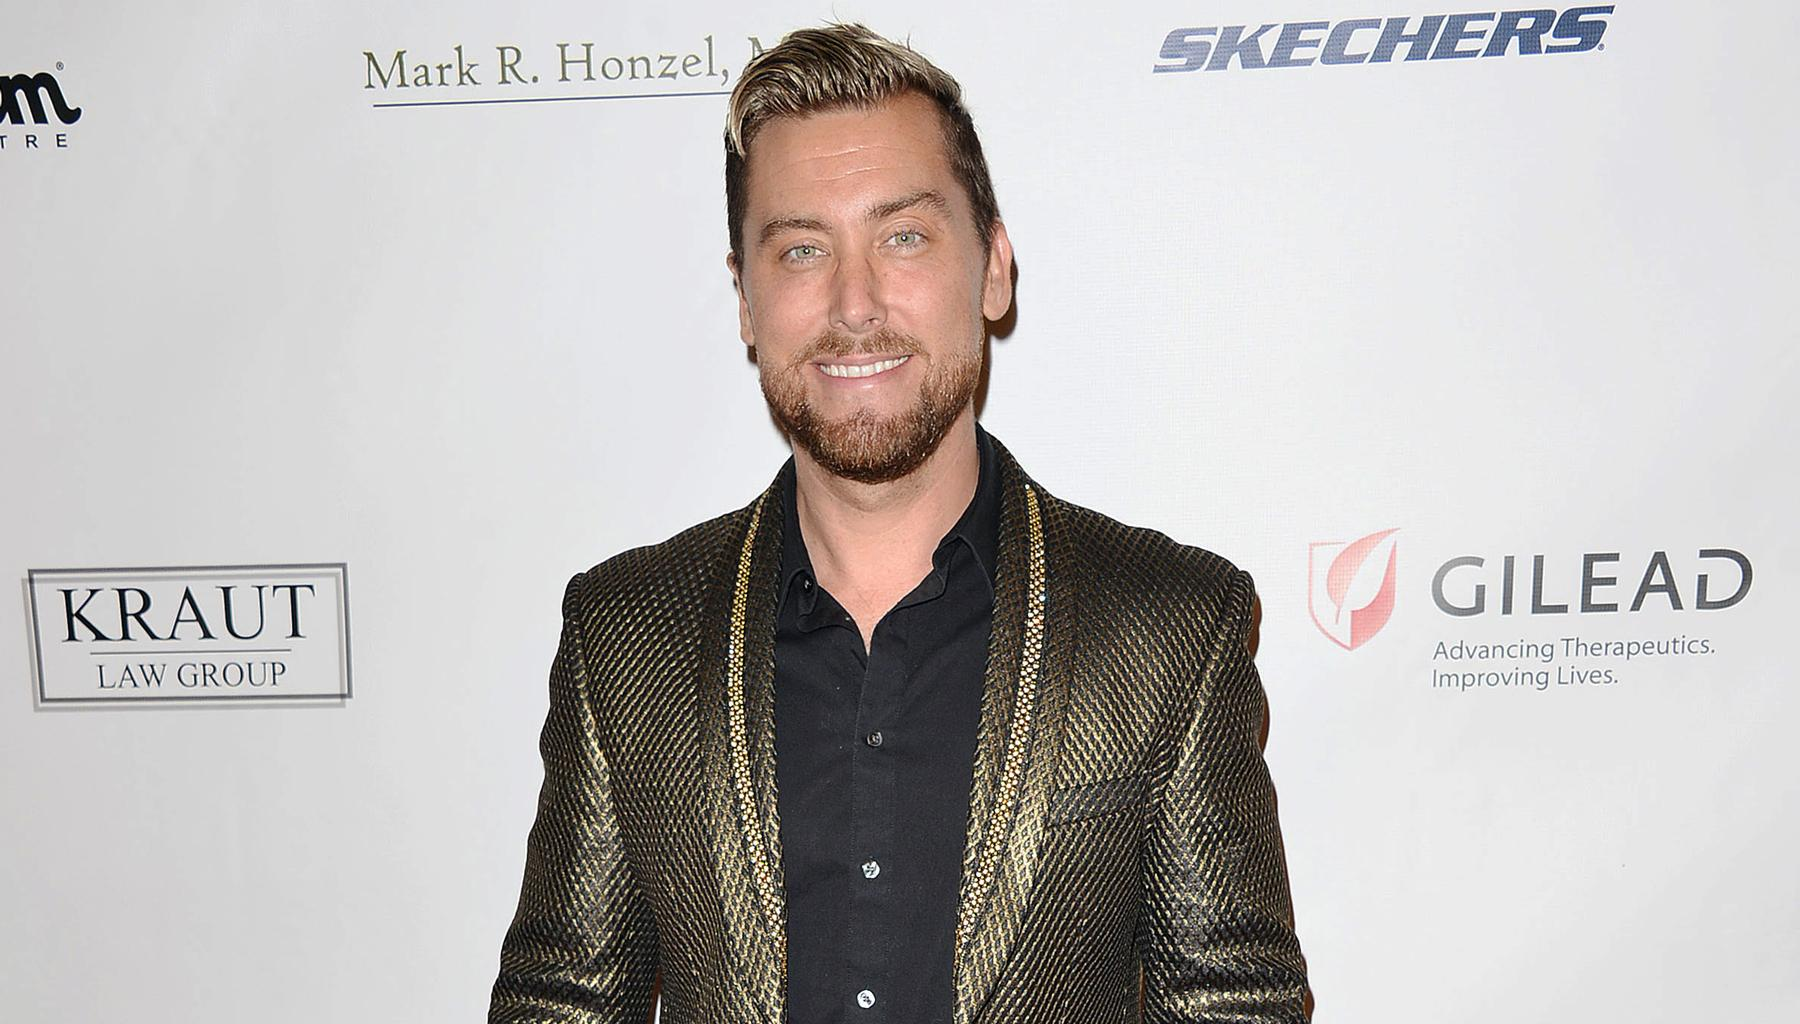 Lance Bass To Officiate Jax Taylor And Brittany Cartwright's Wedding After Homophobic Pastor Scandal